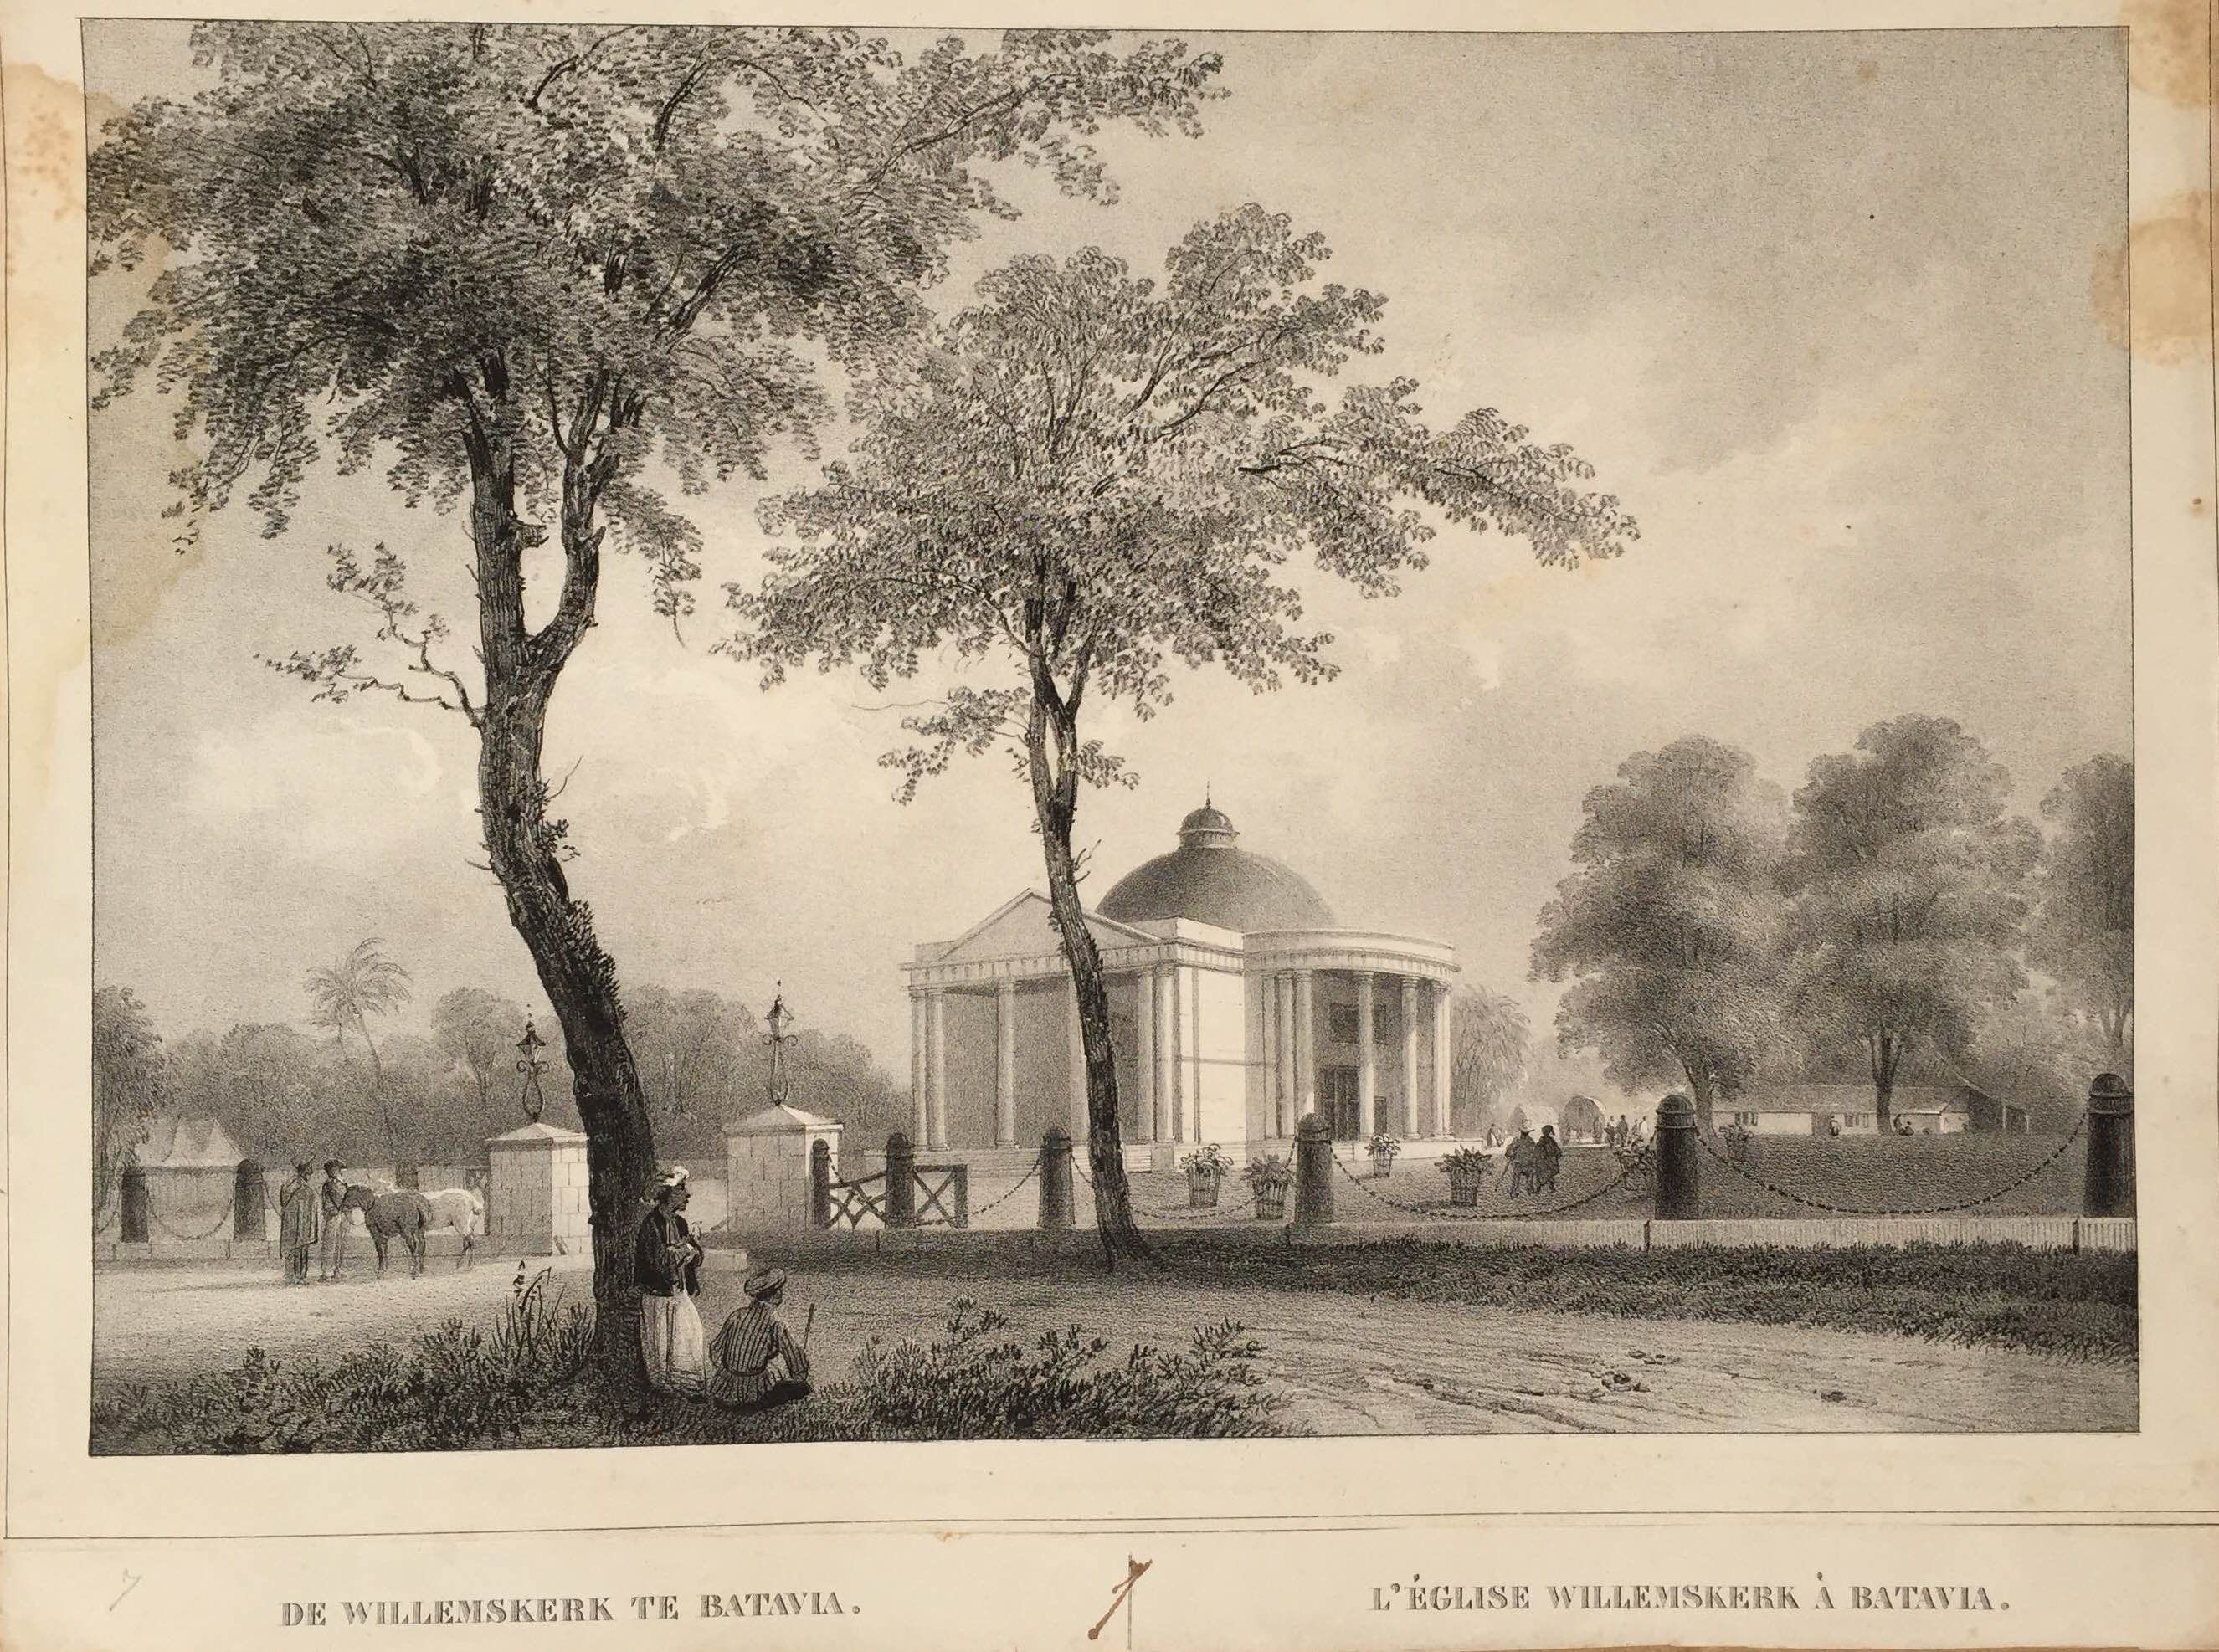 Willems Chruch in Batavia DE WILLEMSKERK TE BATAVIA   L'ÉGLISE WILLEMSKERK A BATAVIA A very fine and detailed black and white mid-19th century lithograph by Paulus Lauters (1806-1875) of Willems Chruch in Batavia (present-day...